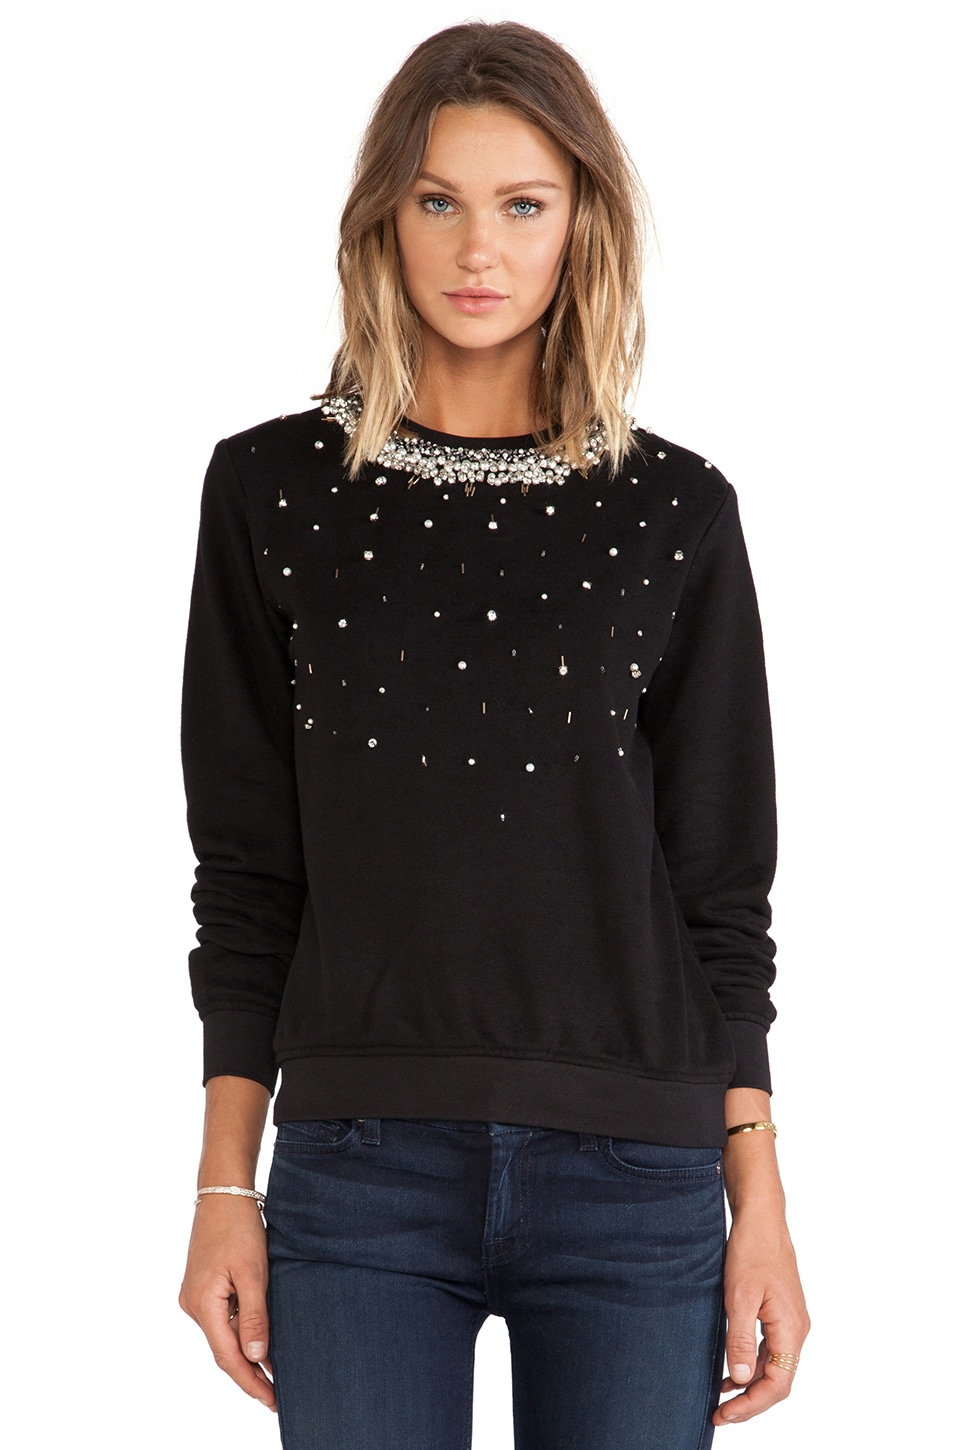 HEMANT AND NANDITA Pop Melange Sweatshirt in Ivory & Black